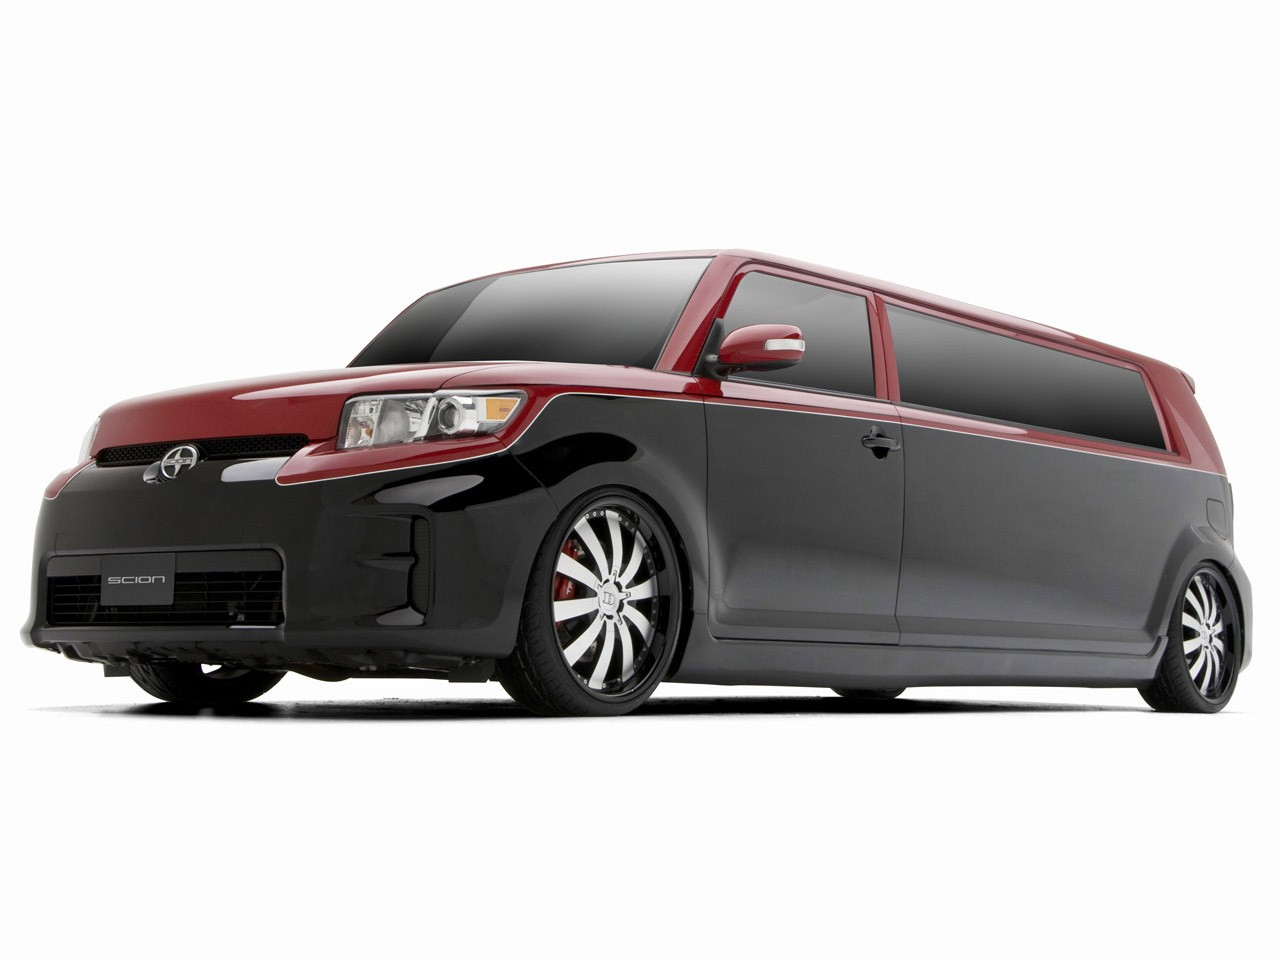 2010 Scion xB Stretched Out by Cartel King